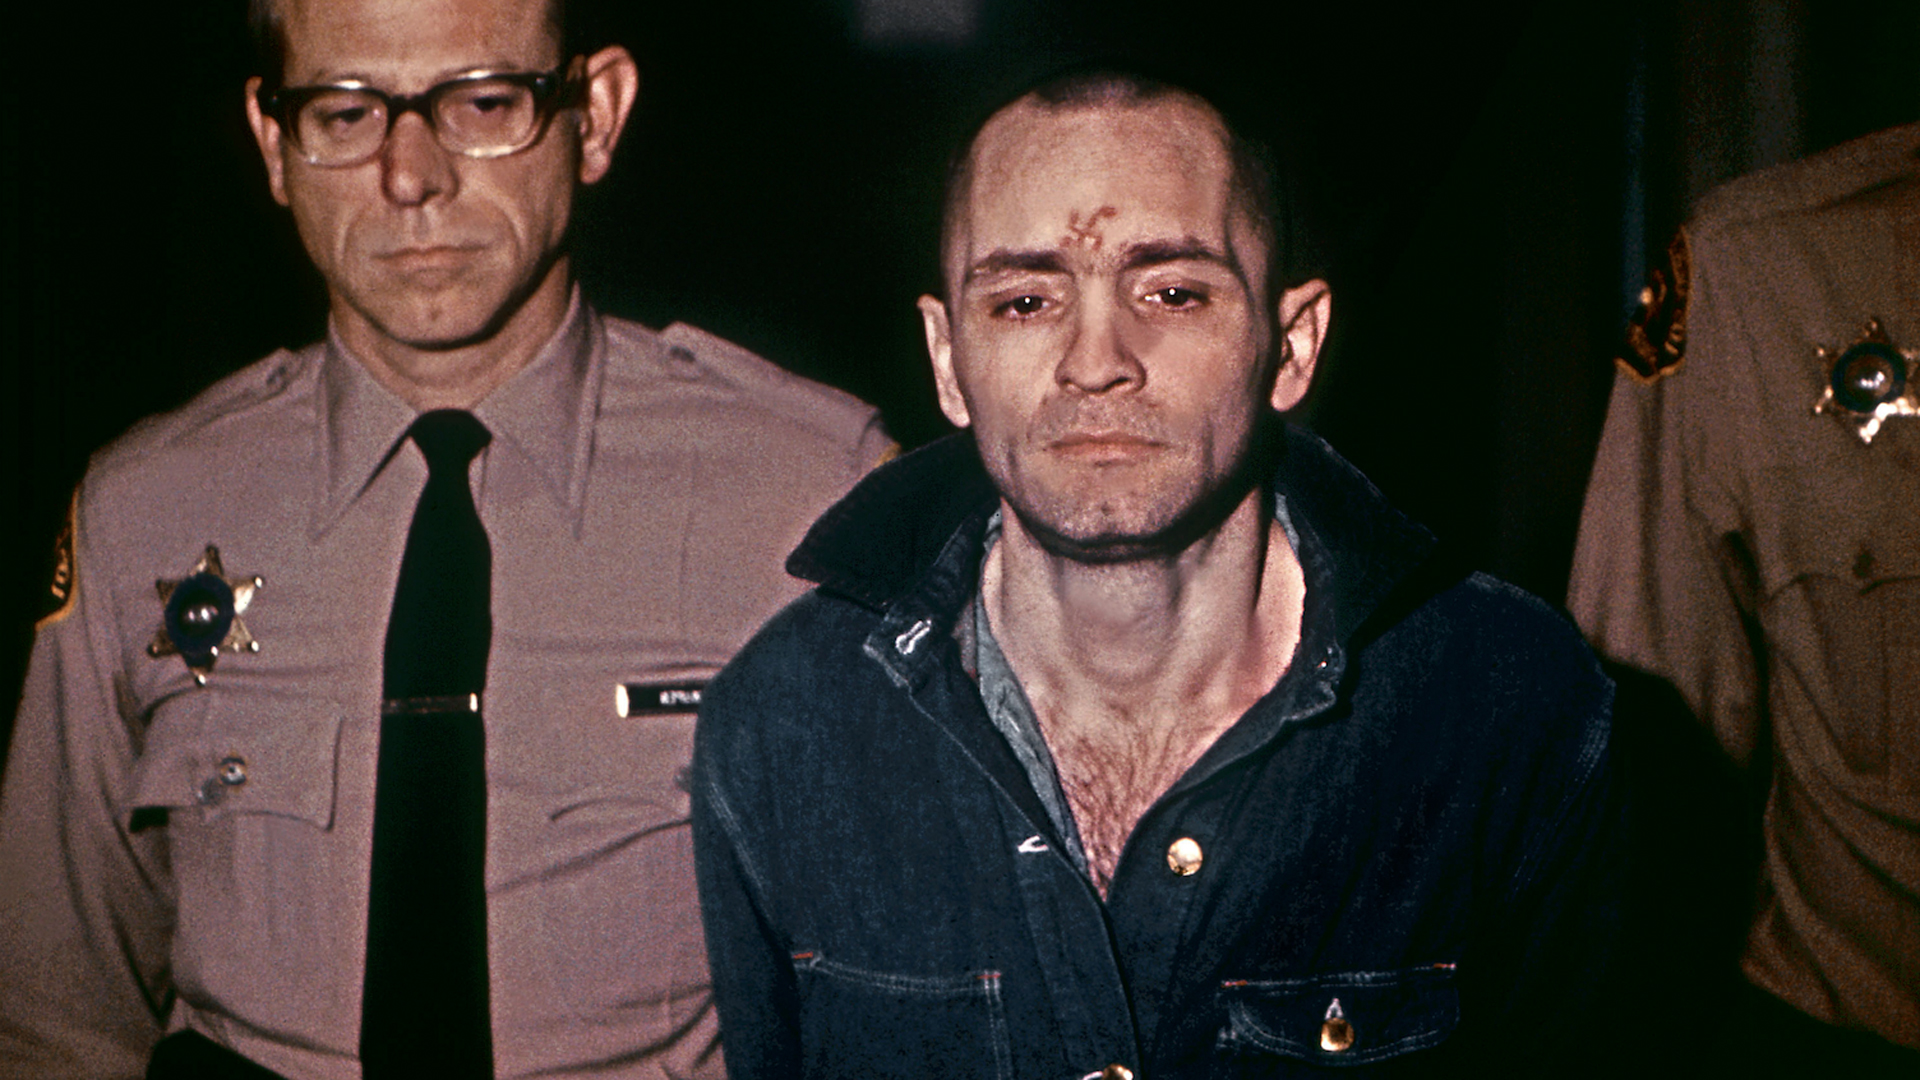 Beardless and shaven-headed, Charles Manson, is sullen faced as he goes to hear sentence of death in the gas chamber passed by the court March 29, 1971, in Los Angeles. Manson was convicted of murder, after in August 1969, during two bloody evenings of paranoid, psychedelic savagery, at least nine people were murdered among them Sharon Tate, the young and pregnant actress and wife of Roman Polanski. The trial of Manson and three girls followers similarly sentenced lasted ten months. (Credit: AFP/Getty Images)